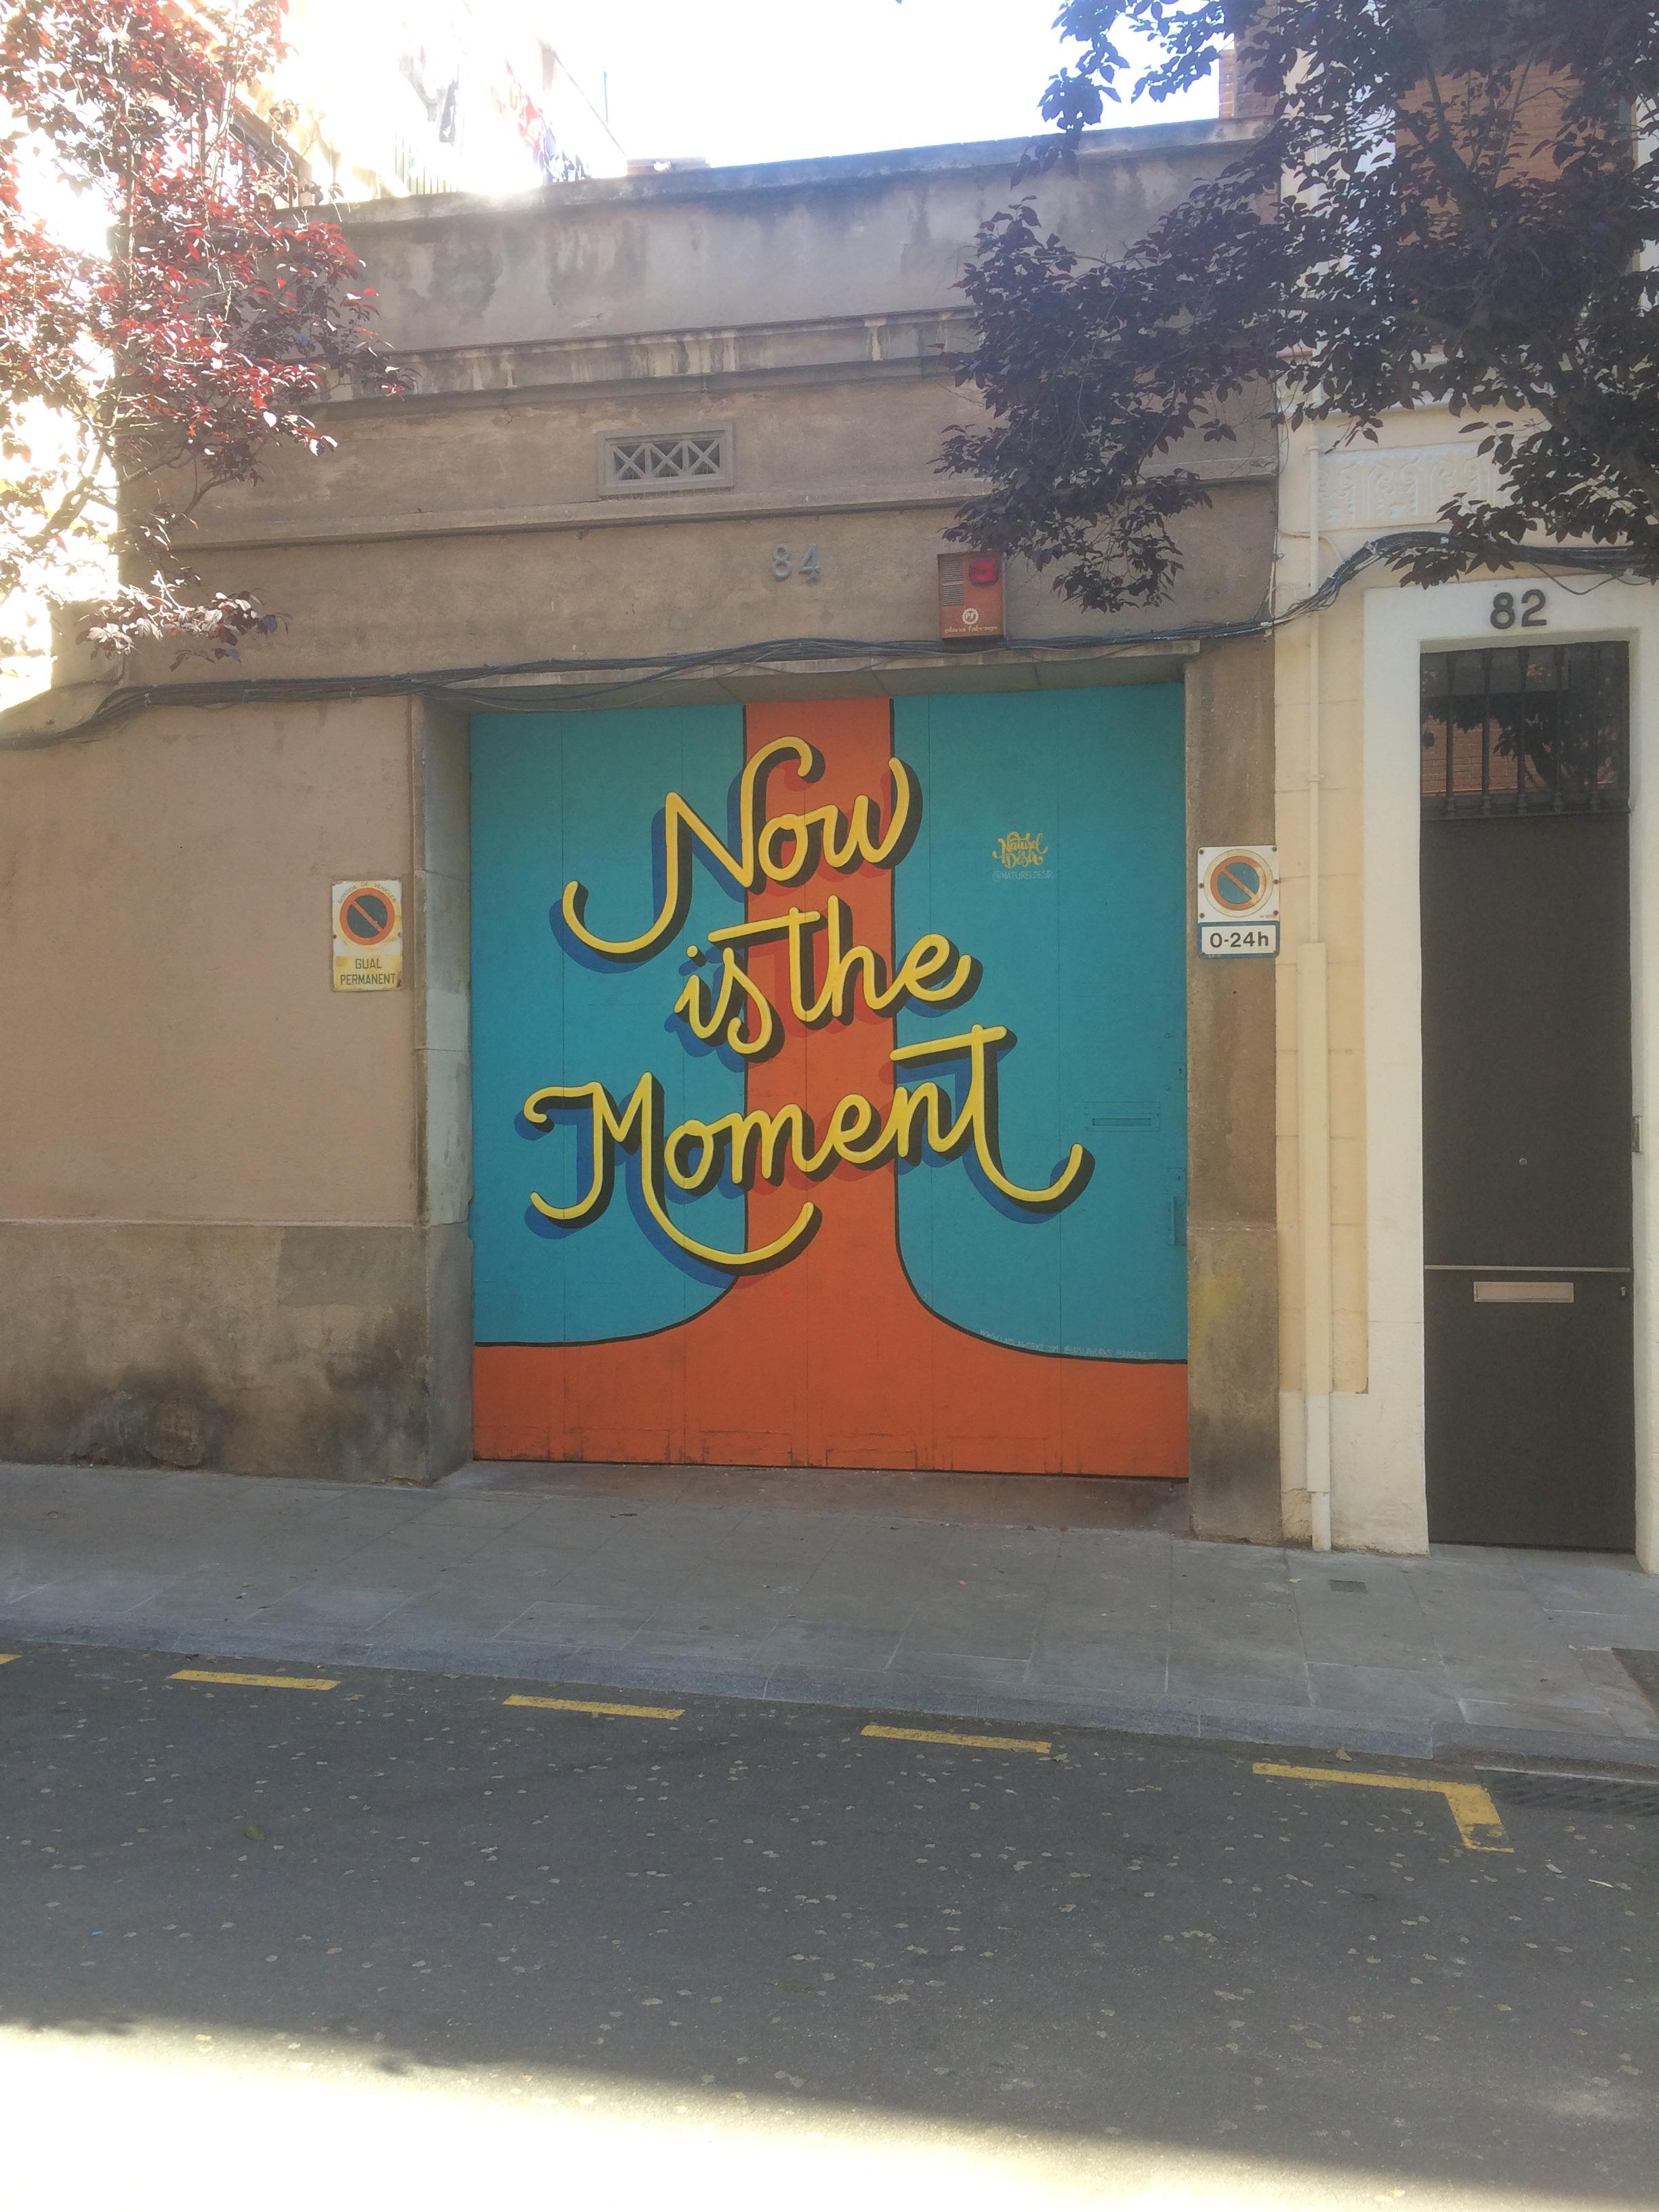 [Image] Now is the Moment